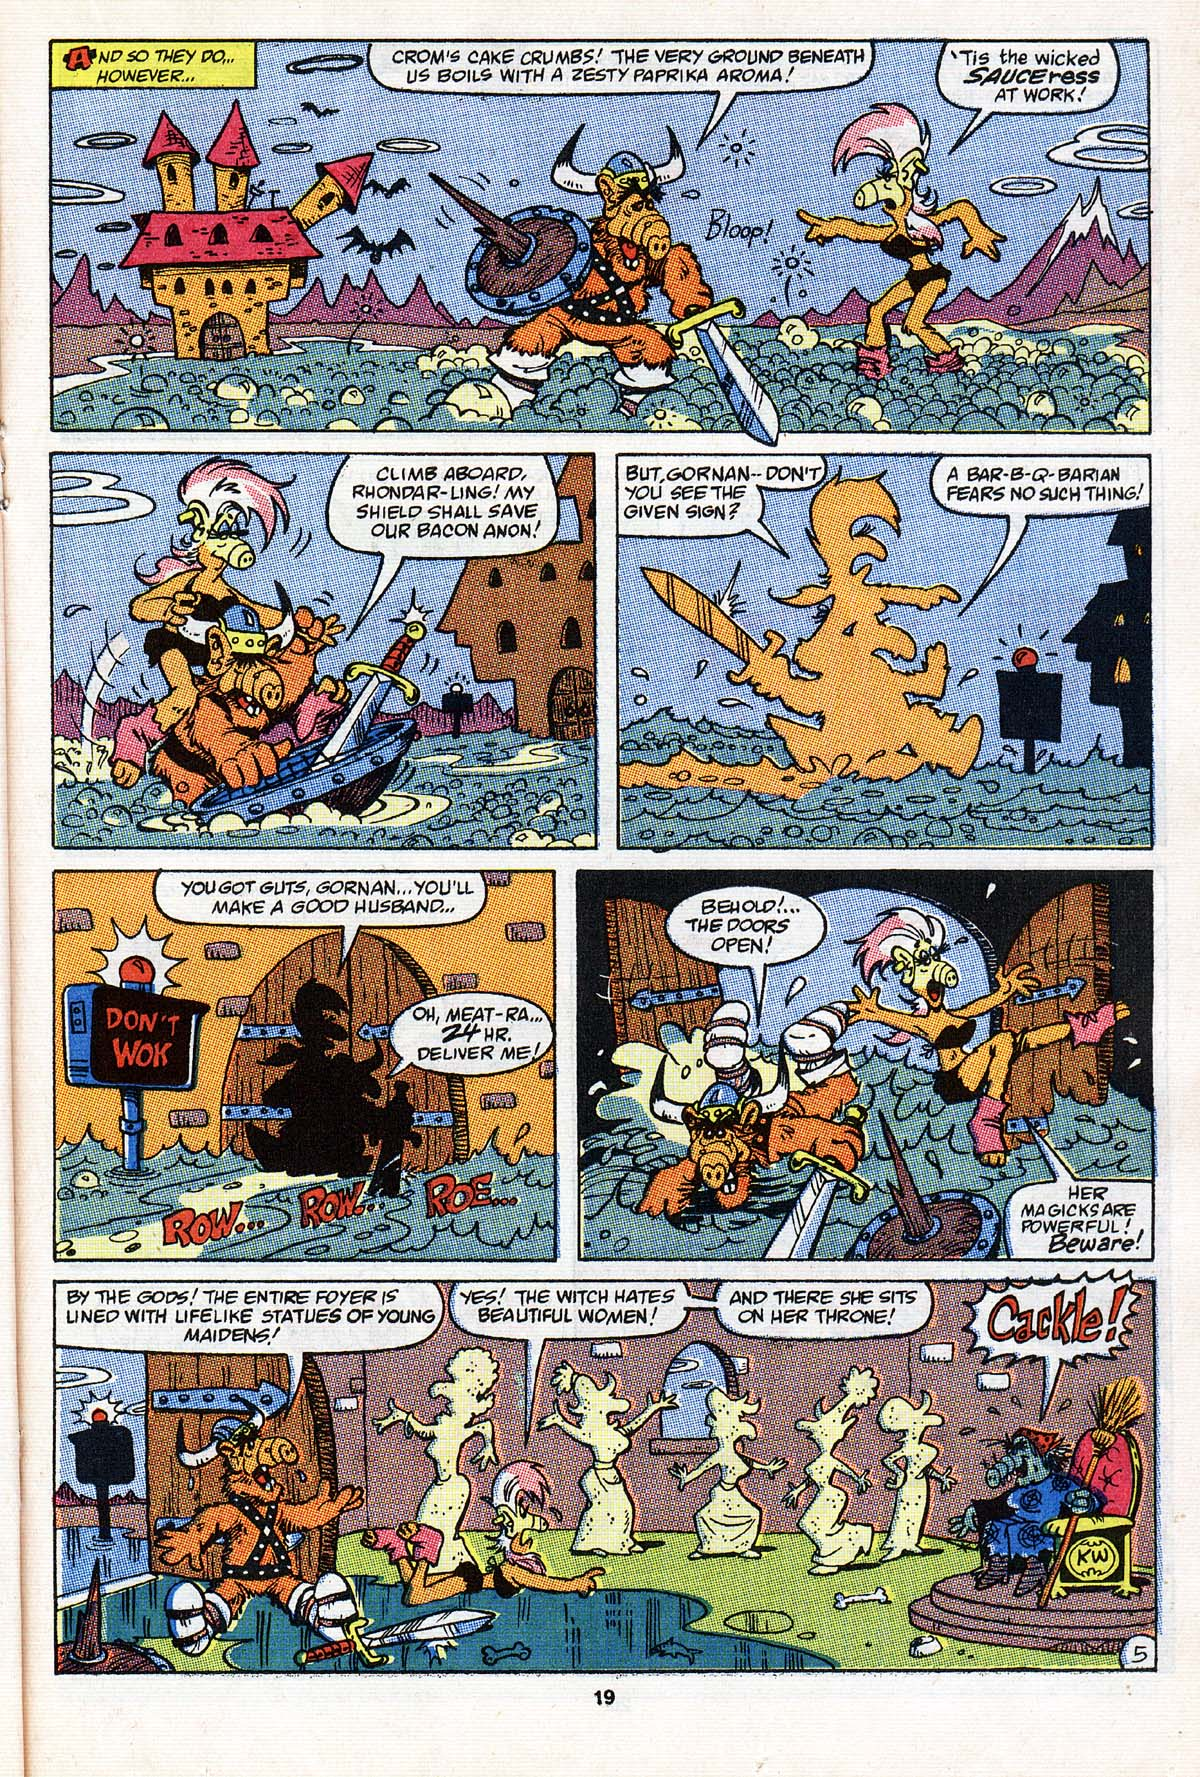 Read online ALF comic -  Issue #20 - 15